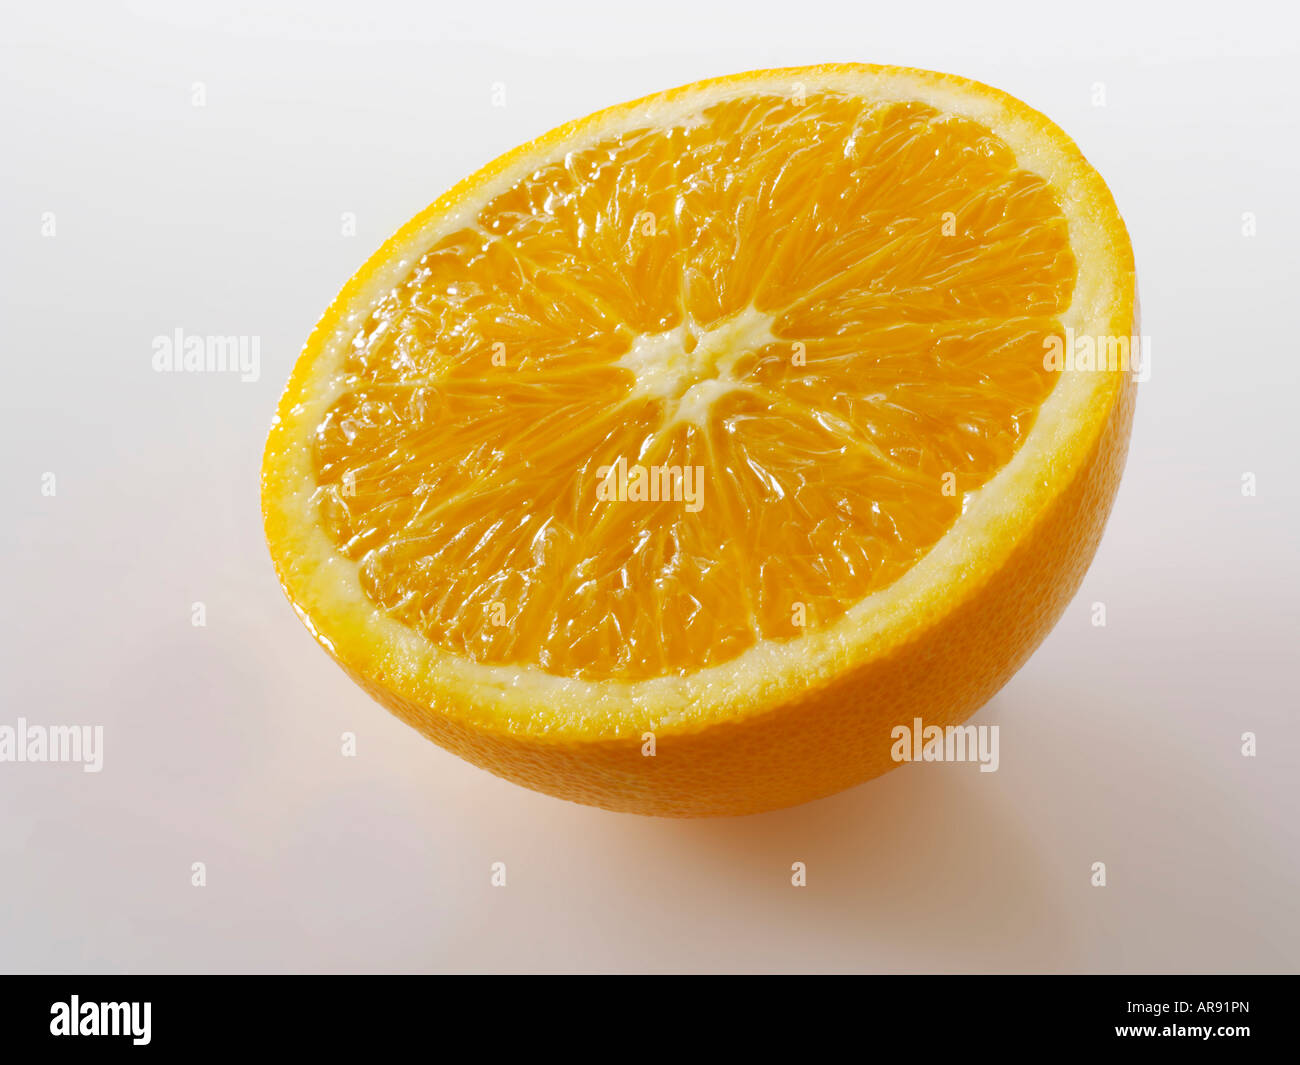 Half An Orange Slice On A White Background As A Cut Out